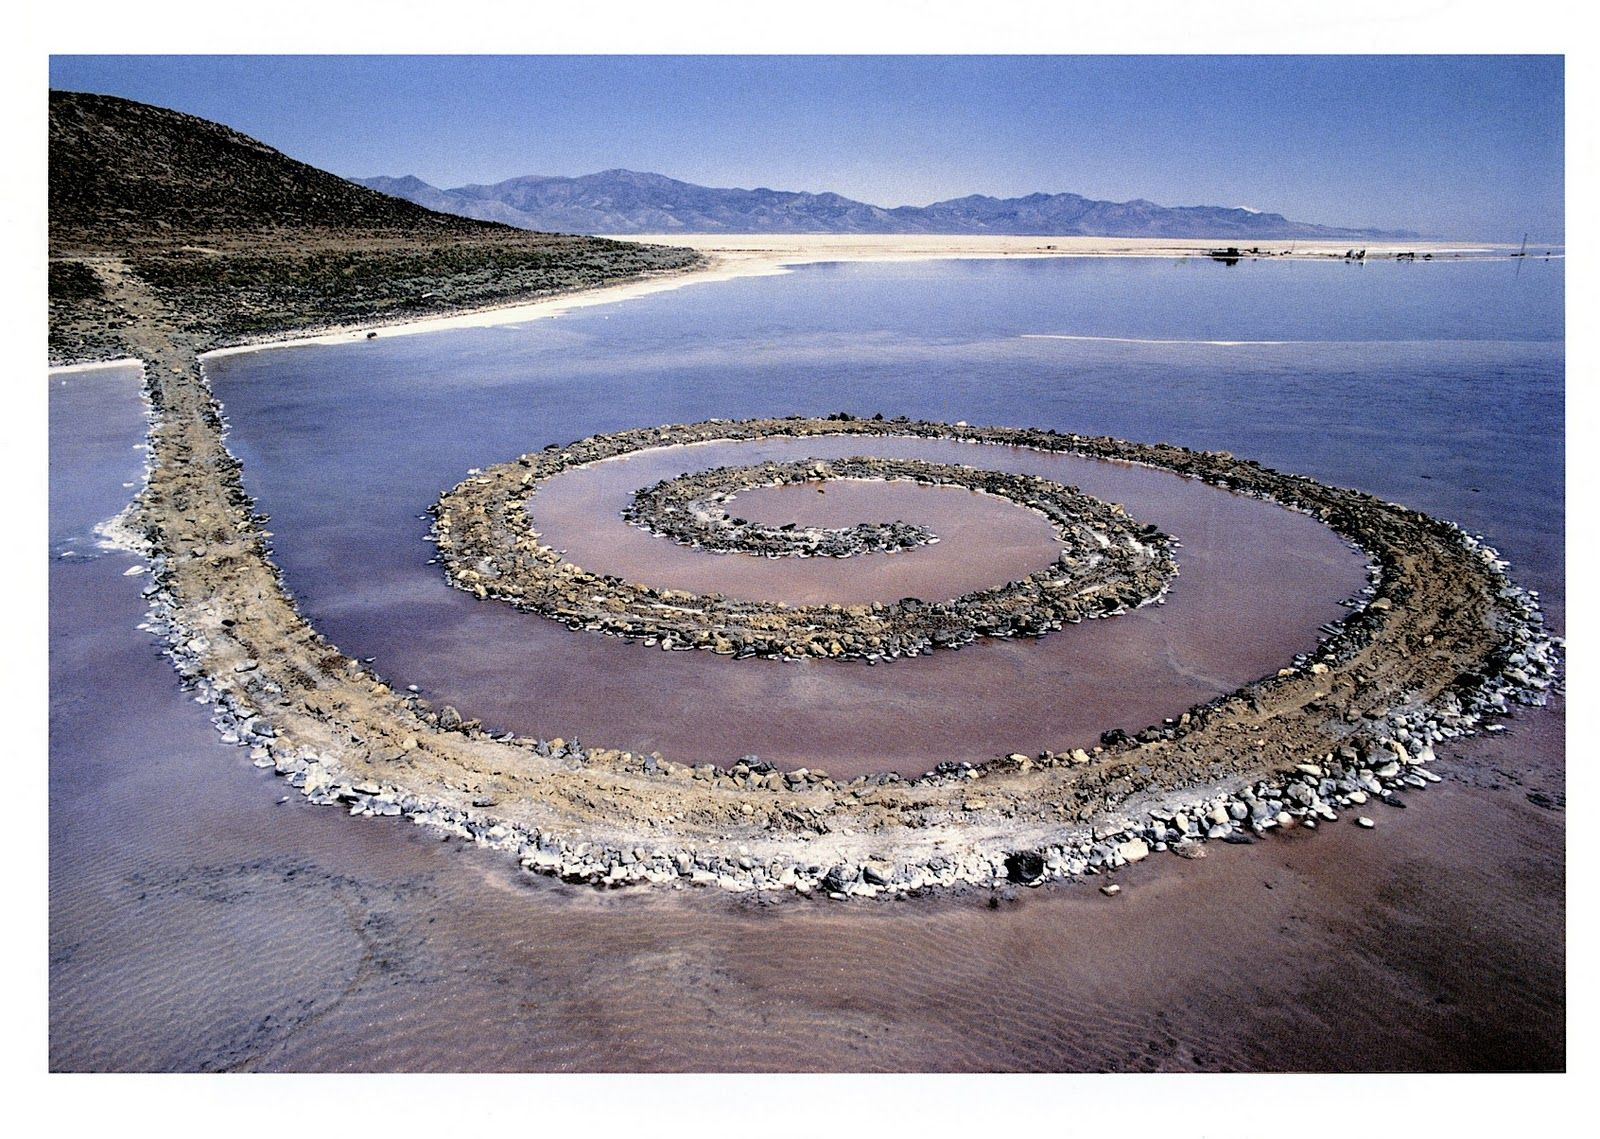 robert smithson spiral jetty essay One line of a jack johnson song has more meaning than every essay i've ever written pro con euthanasia arguments essay the crucible essay on power american.